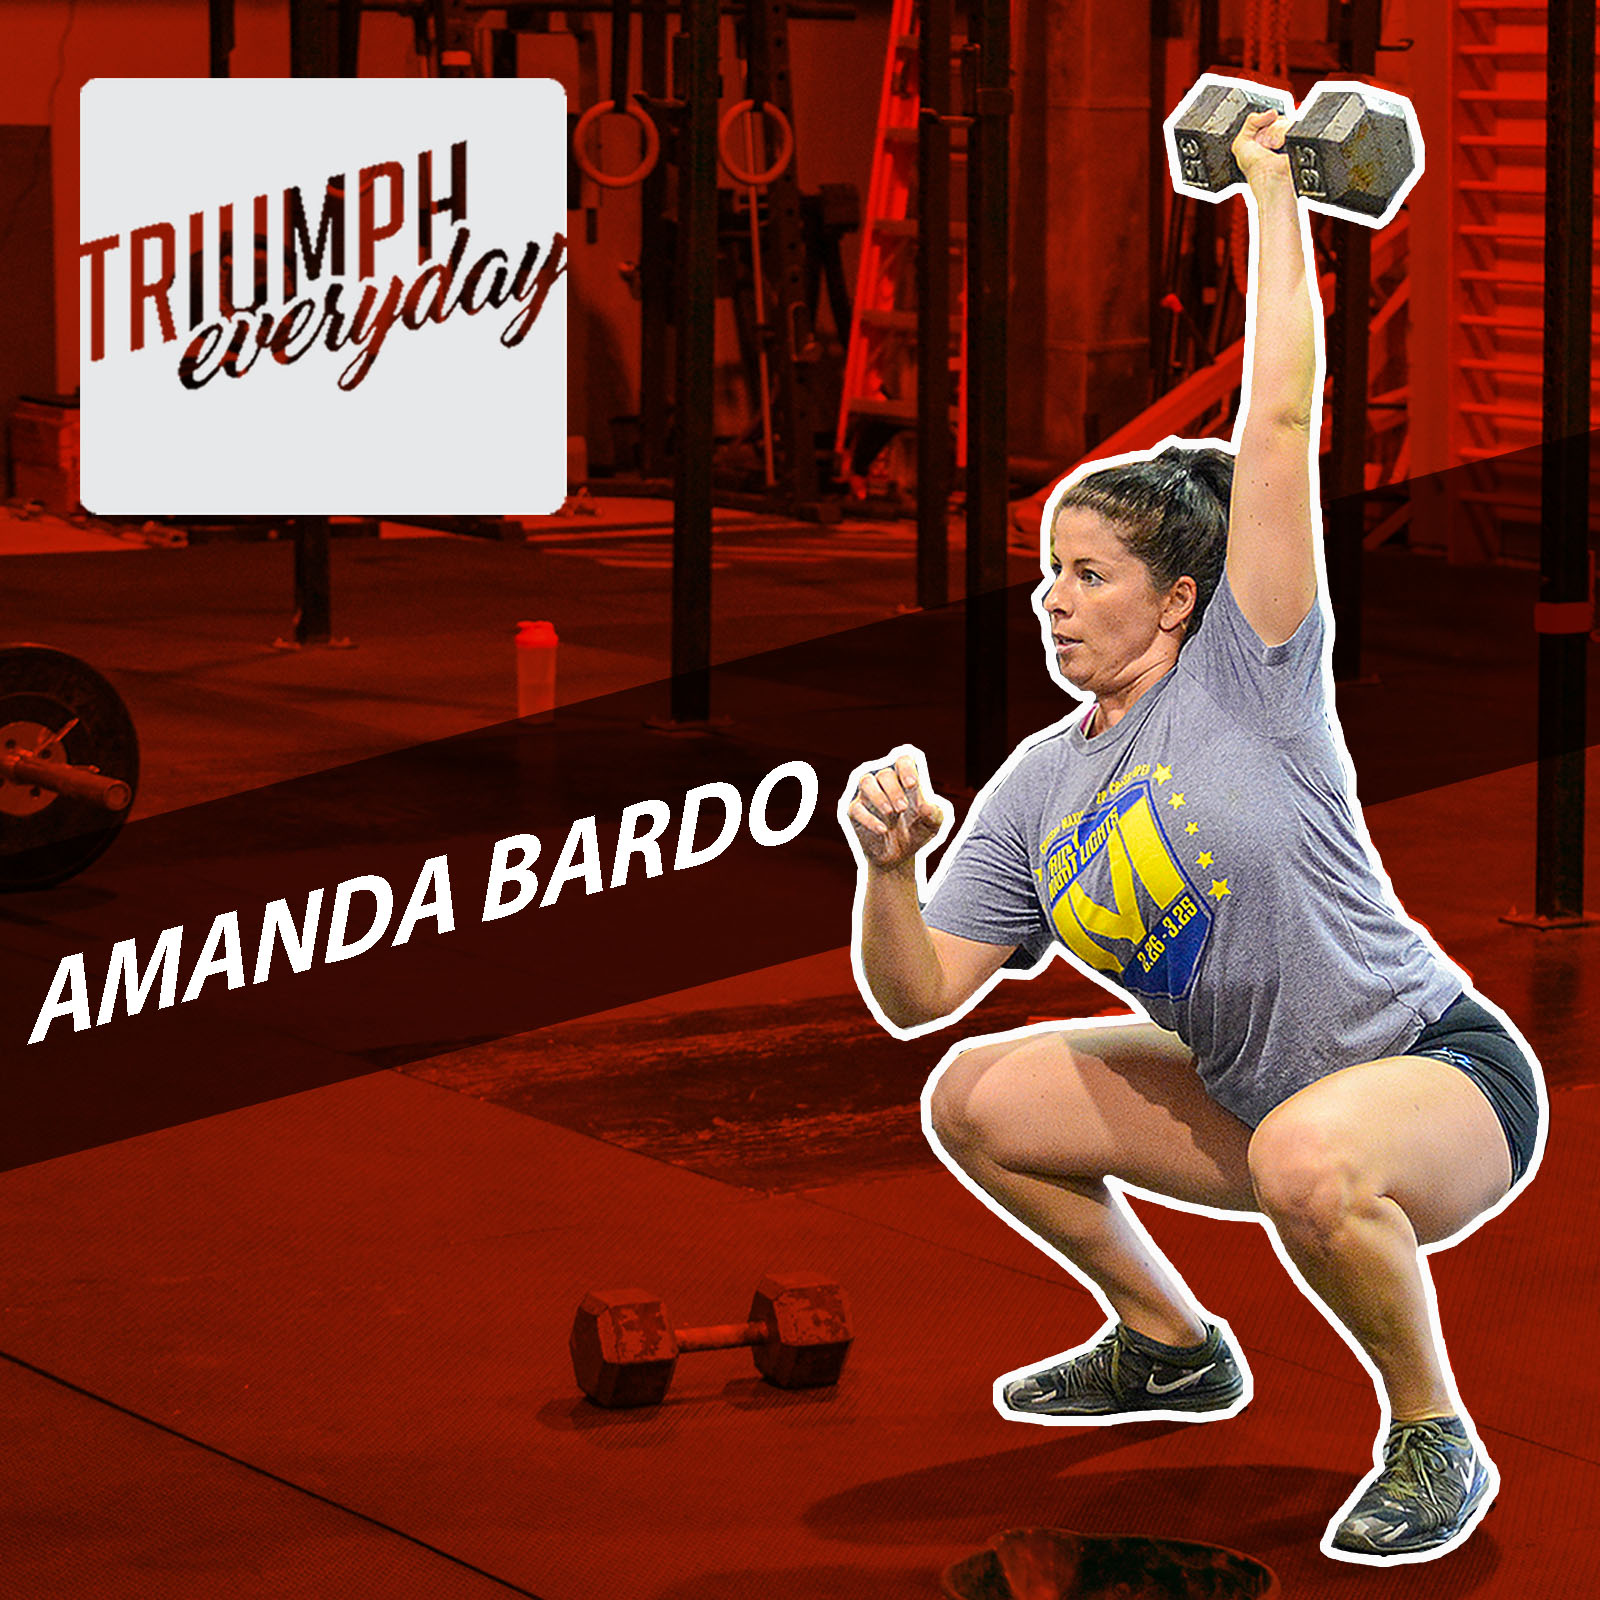 Triumph Everyday Amanda Bardo Soundcloud